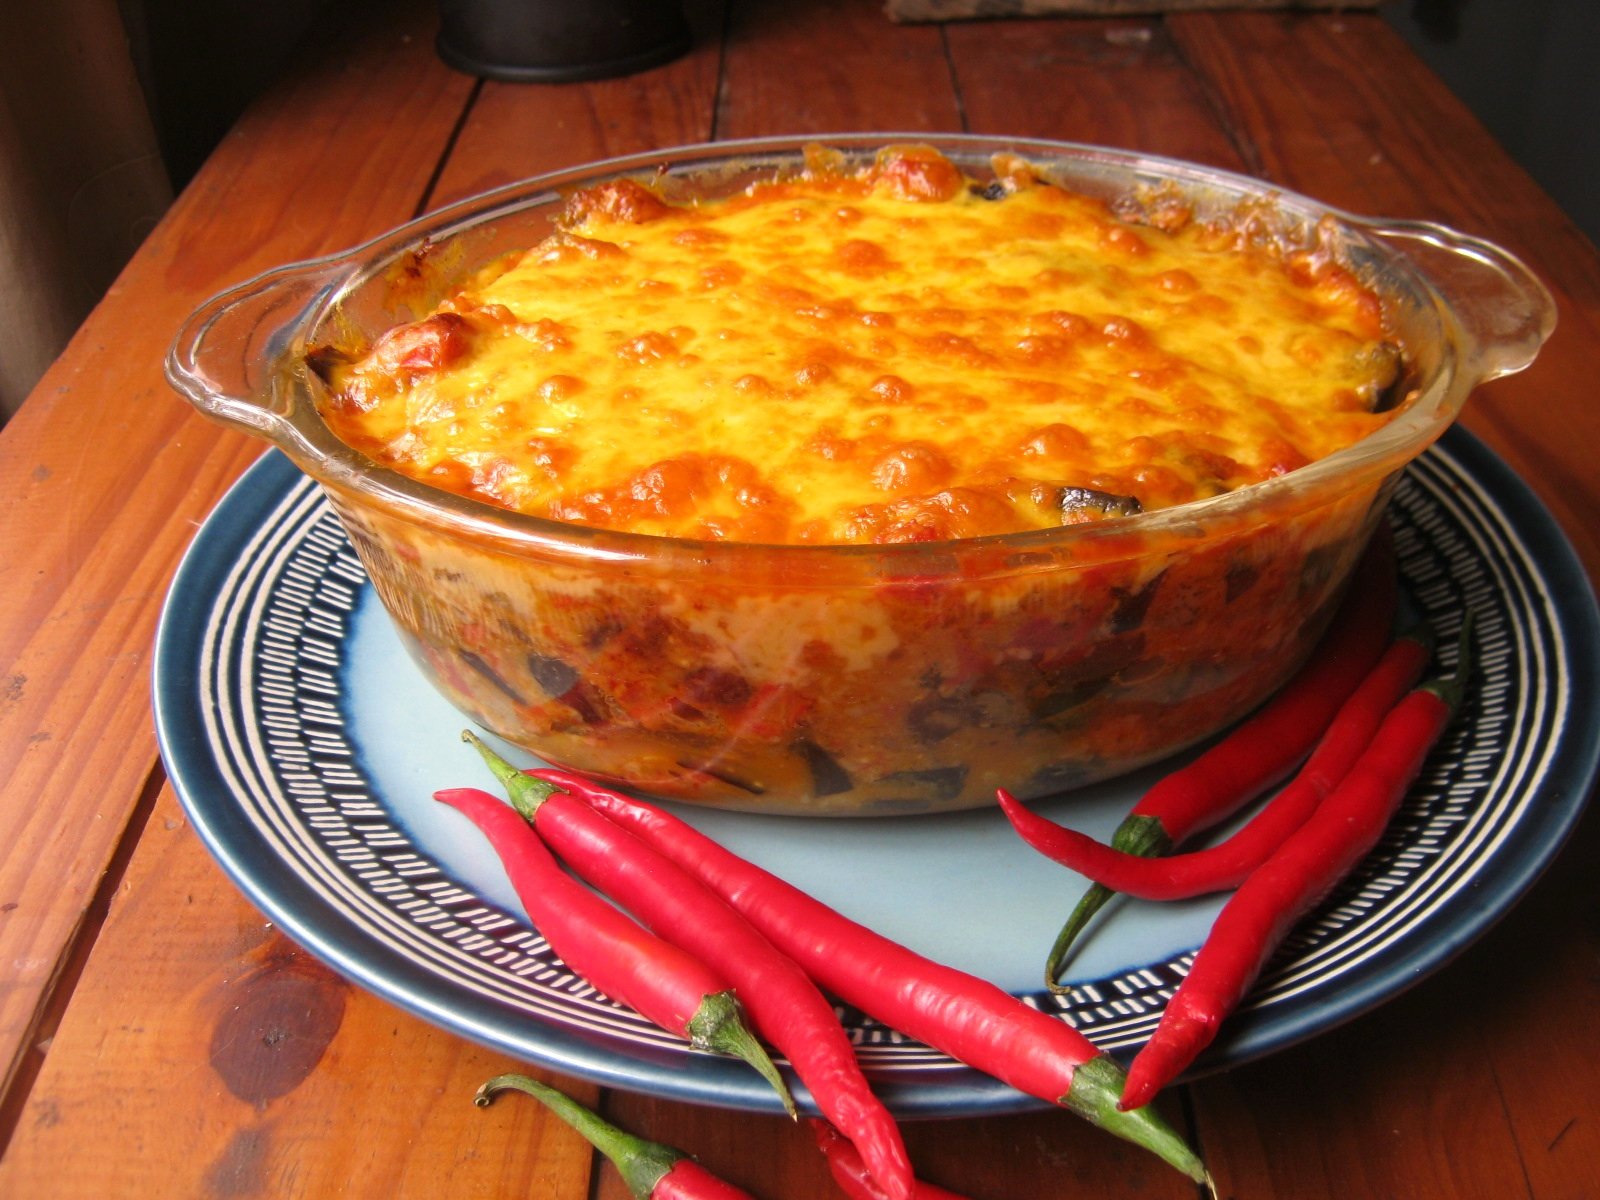 Fruity and spicy Cape vegetable casserole